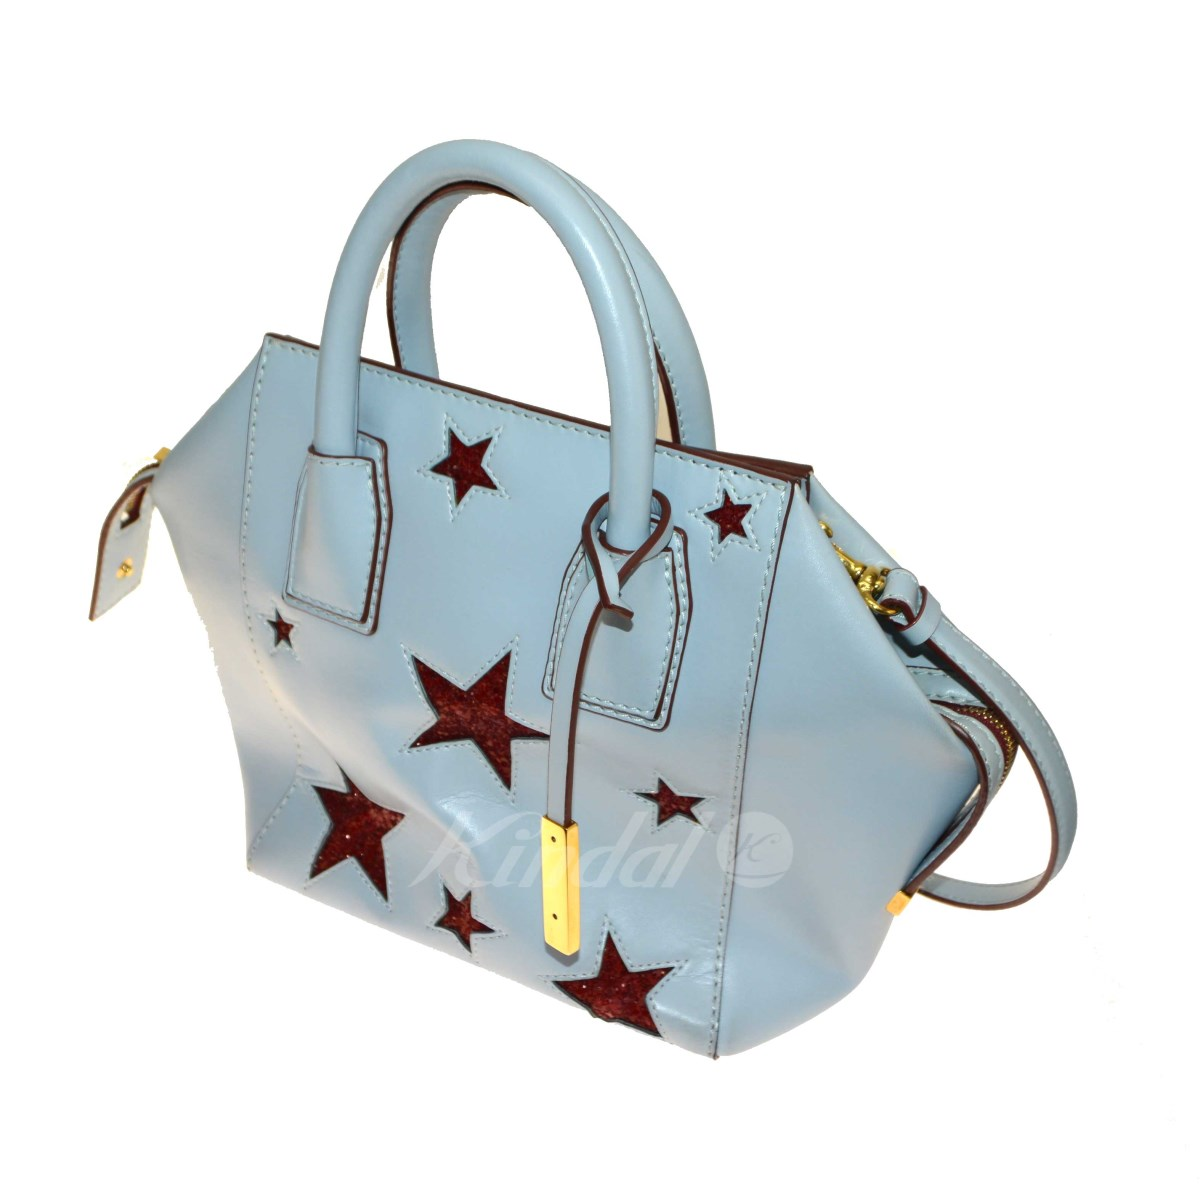 【中古】STELLA McCARTNEY 2WAY Star Shoulder bag 【送料無料】 【096096】 【KIND1550】